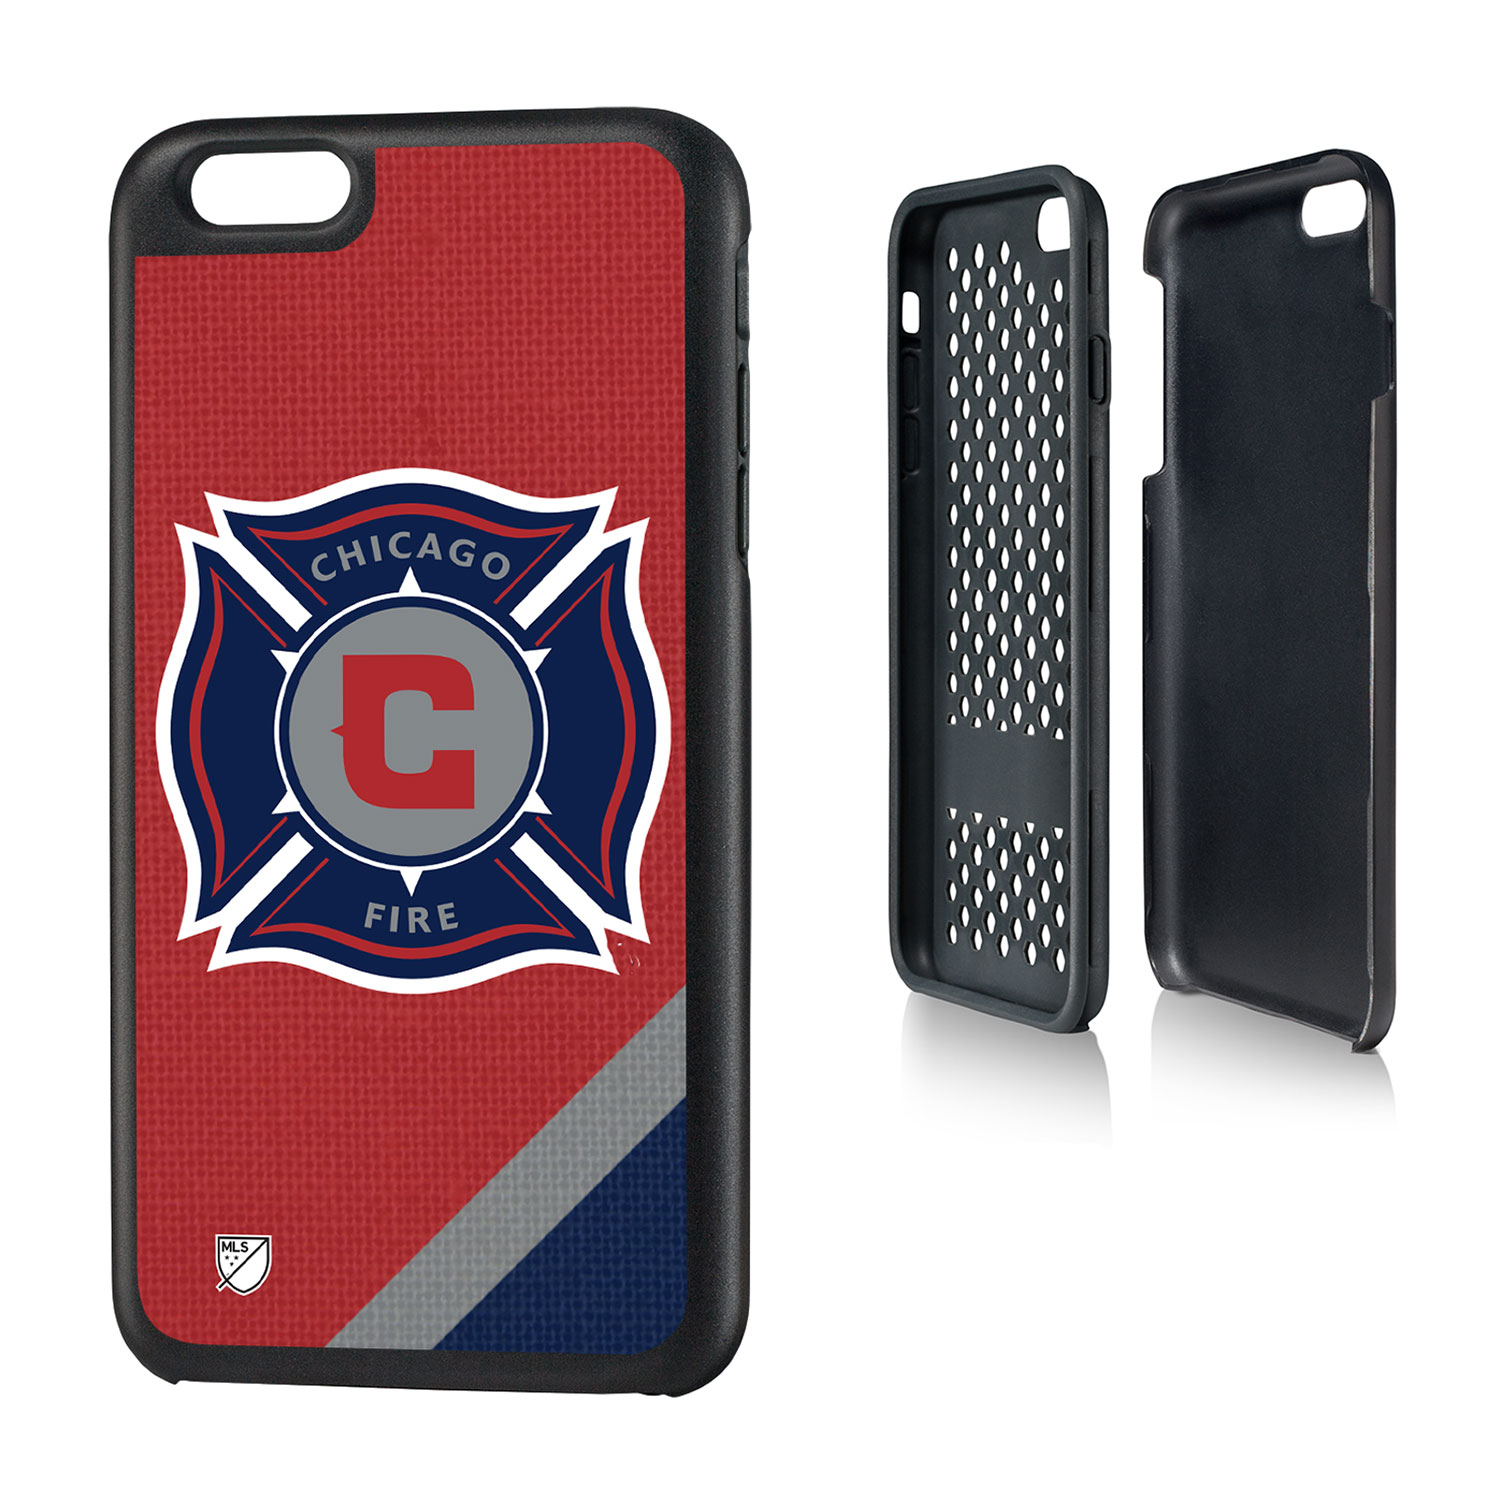 Chicago Fire #CF97 Solid Rugged Case for iPhone 6 Plus